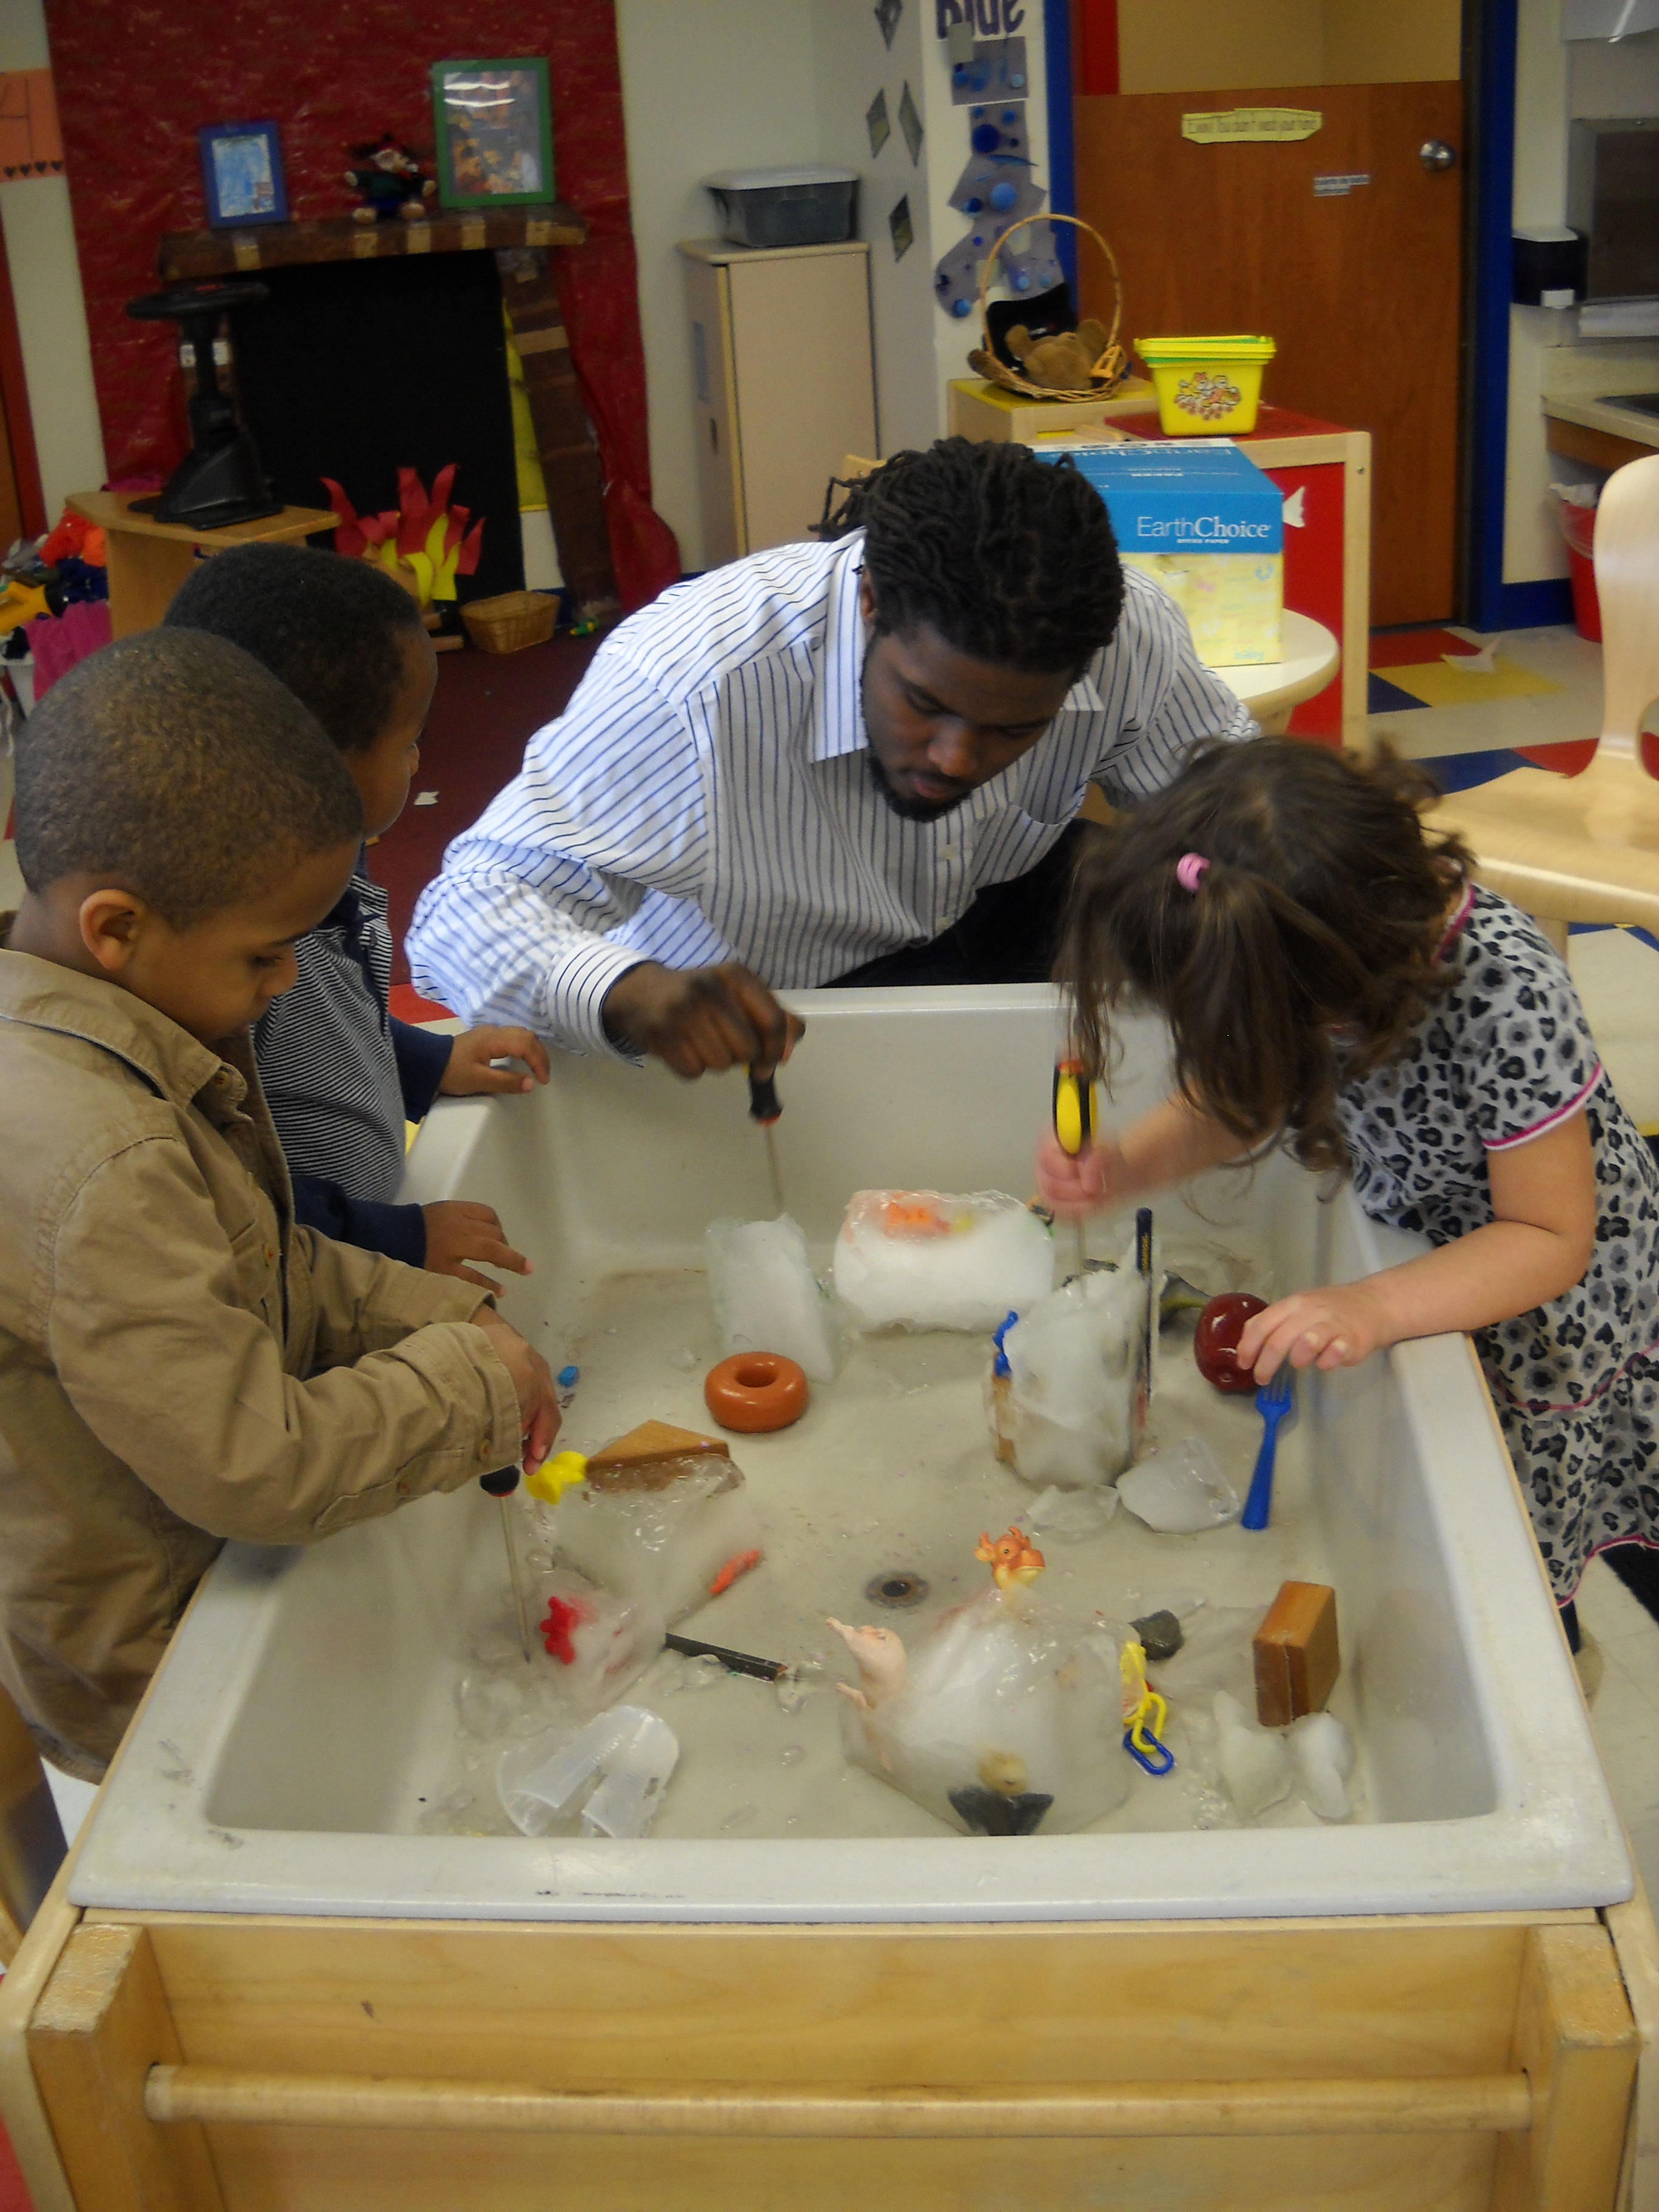 winter themes involve science at day nursery northwest indianapolis